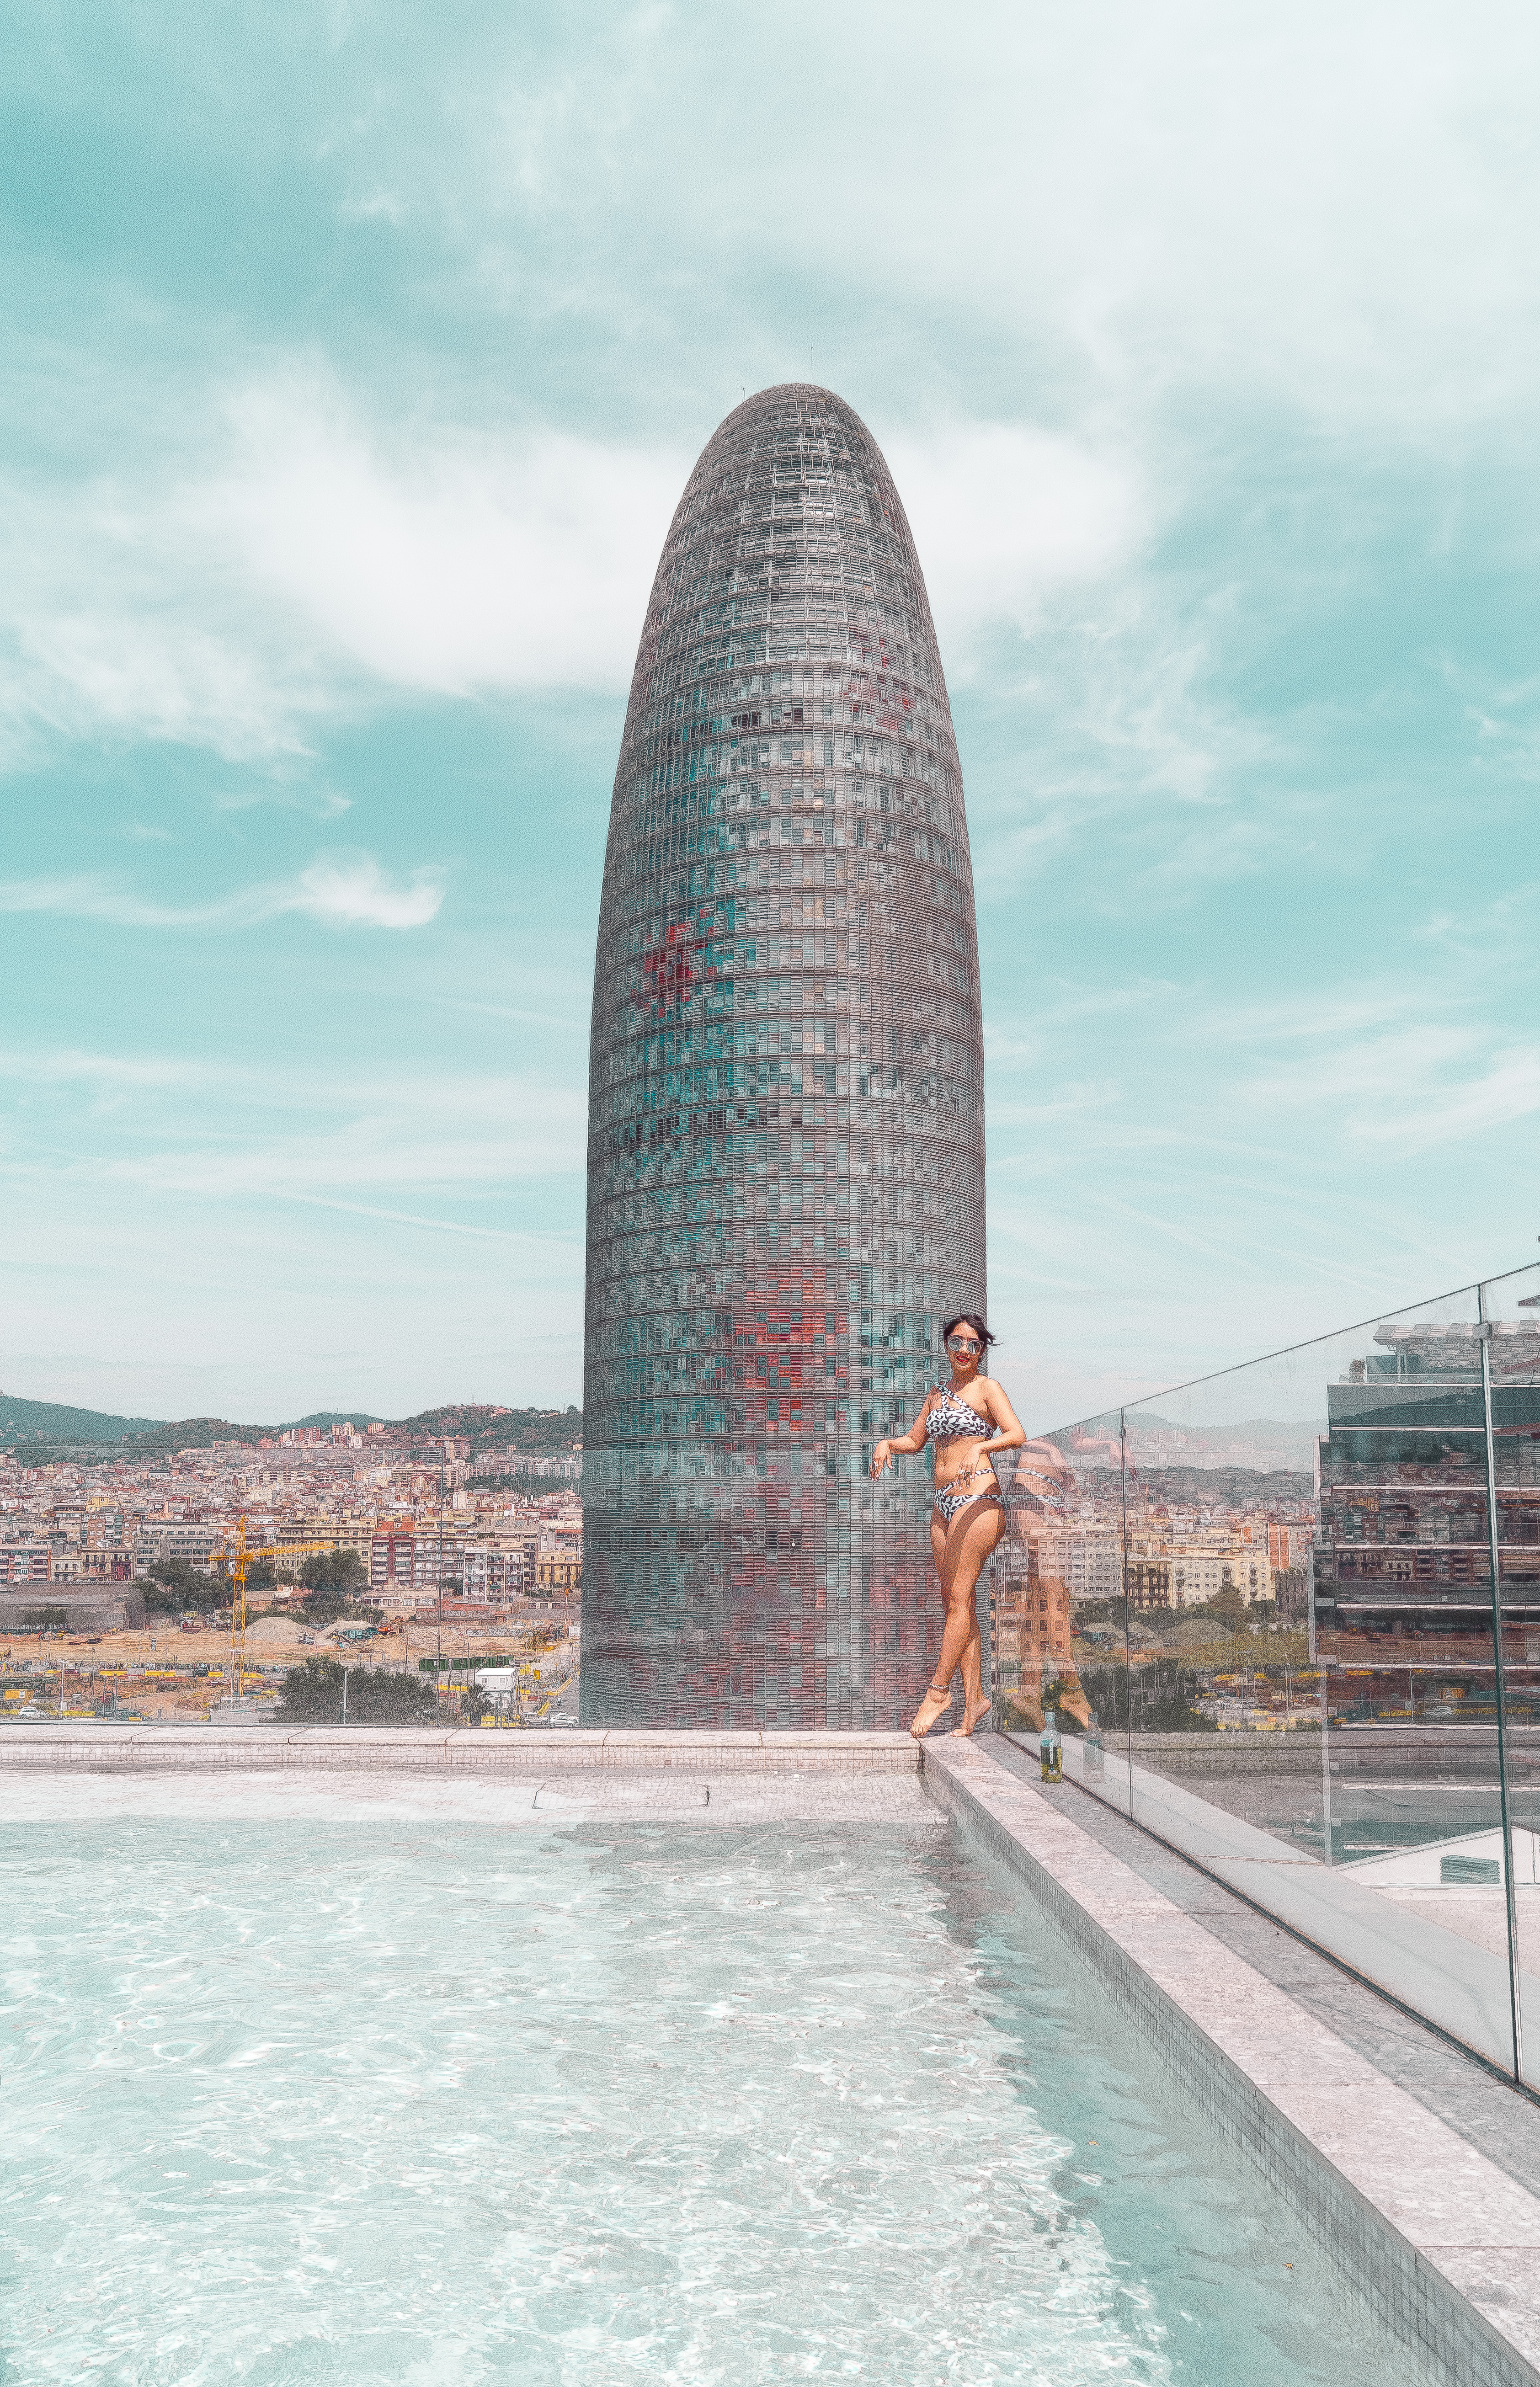 Hotel SB Glow Barcelona: The Best Hotel For A Couple's Weekend Getaway